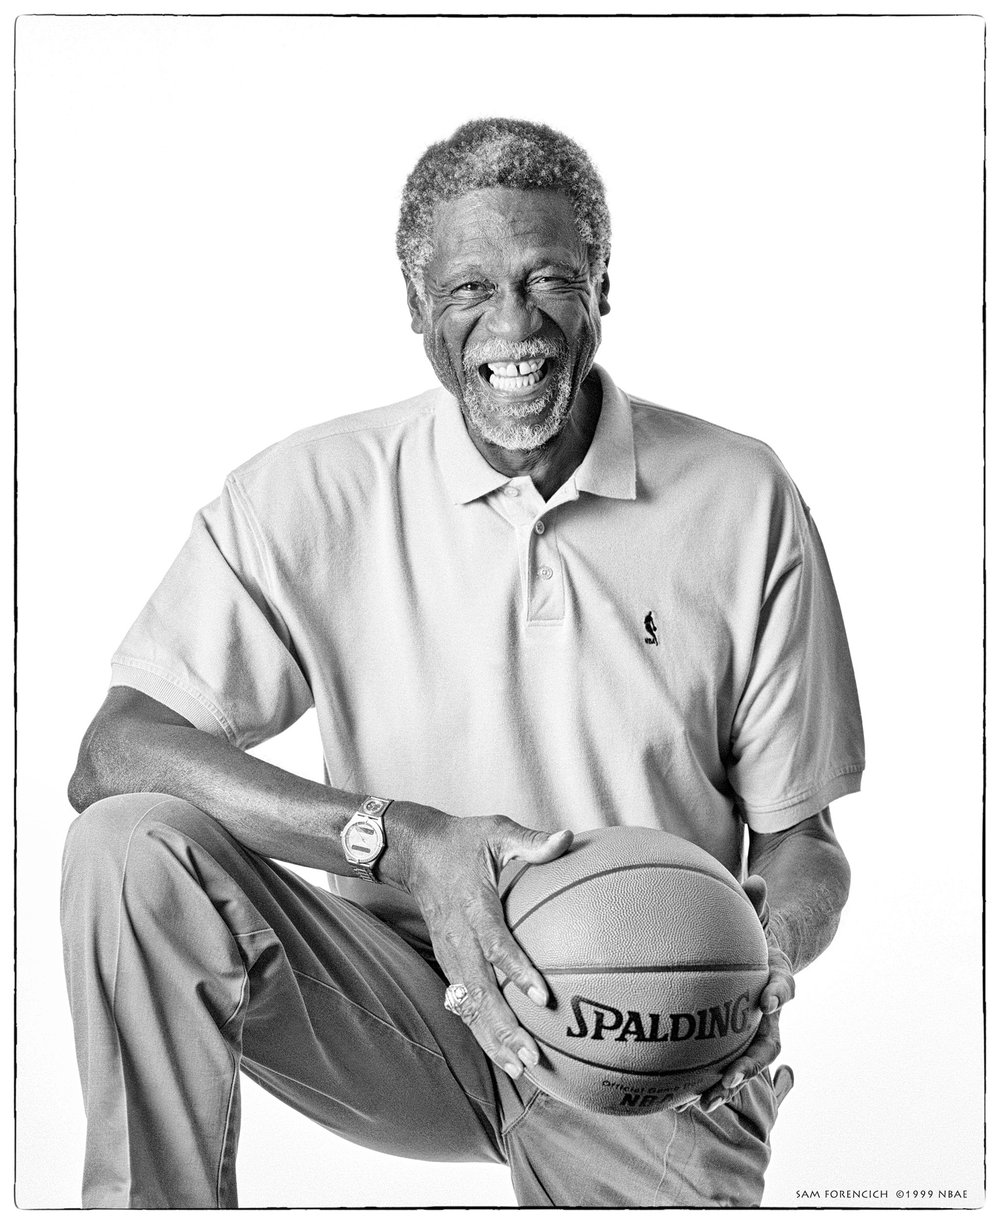 Danville, CA - Portrait of former Boston Celtic Bill Russell for a promotional display in conjunction with the NBA Store opening in downtown Manhattan in 1999. Manually focused Hasselblad, Tmax 100 film, studio lighting.  Sam Forencich ©1999 NBAE